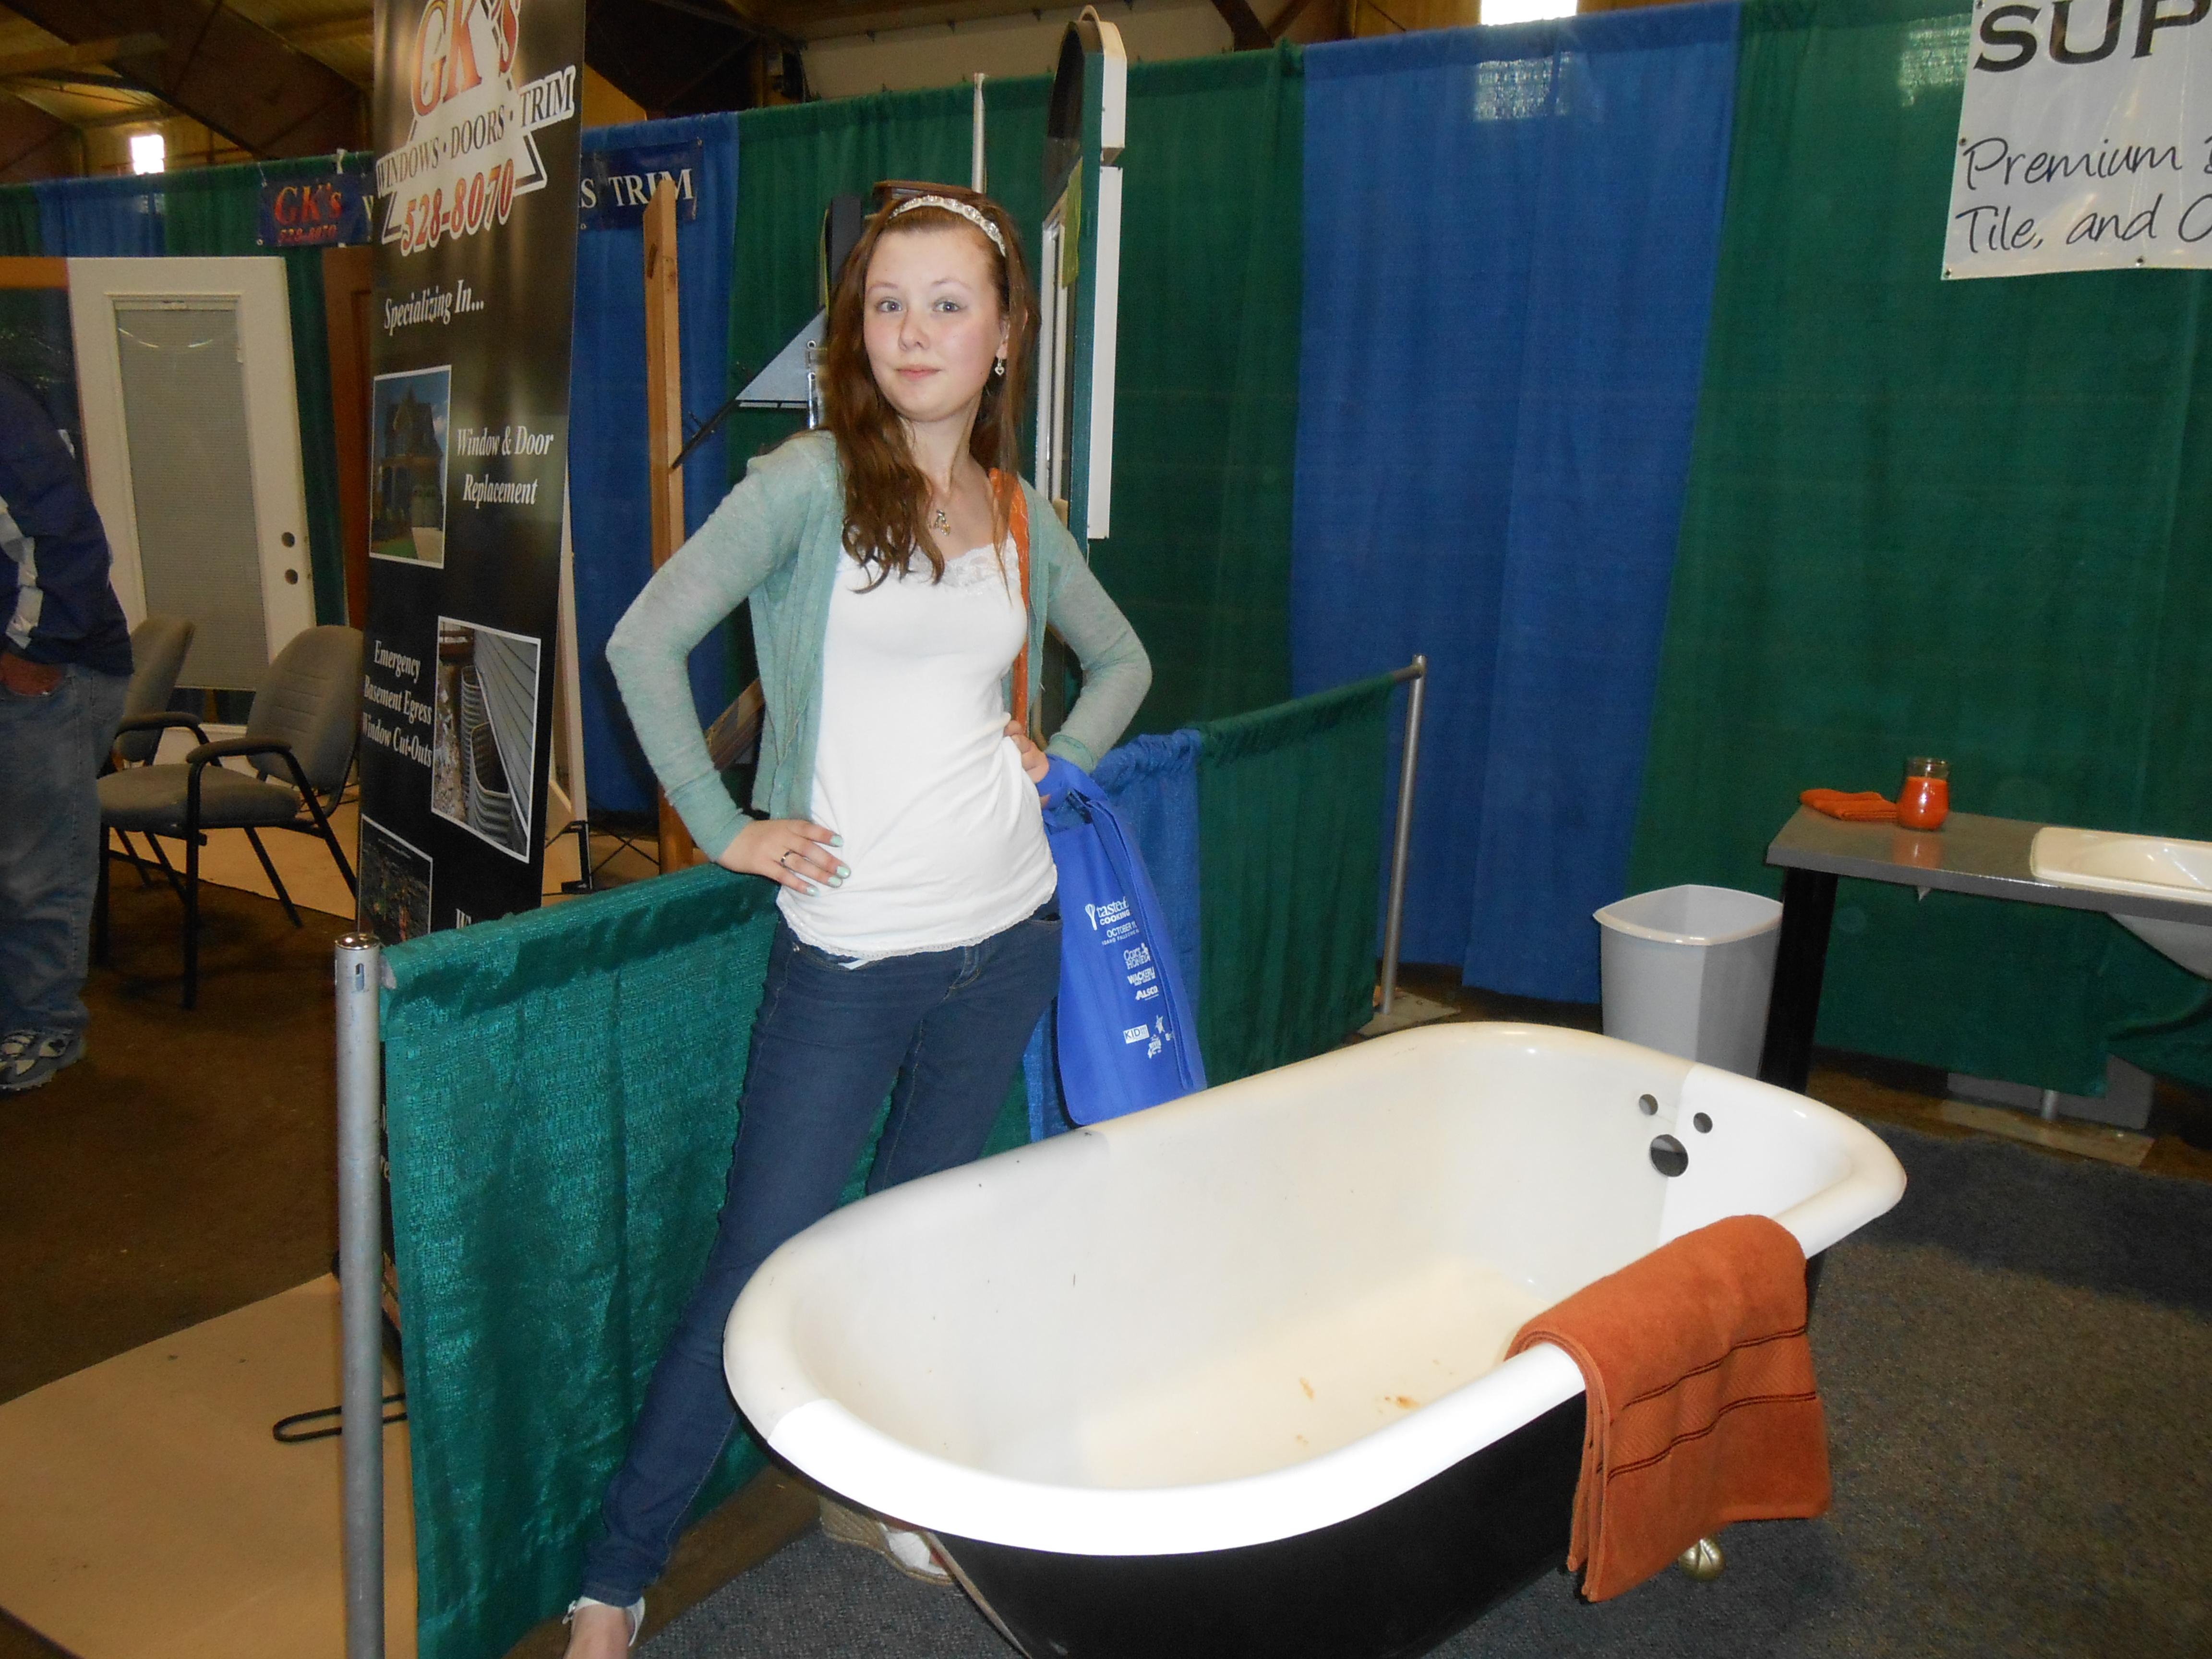 Awesome Retro Bathtub! I would love to own one of these!